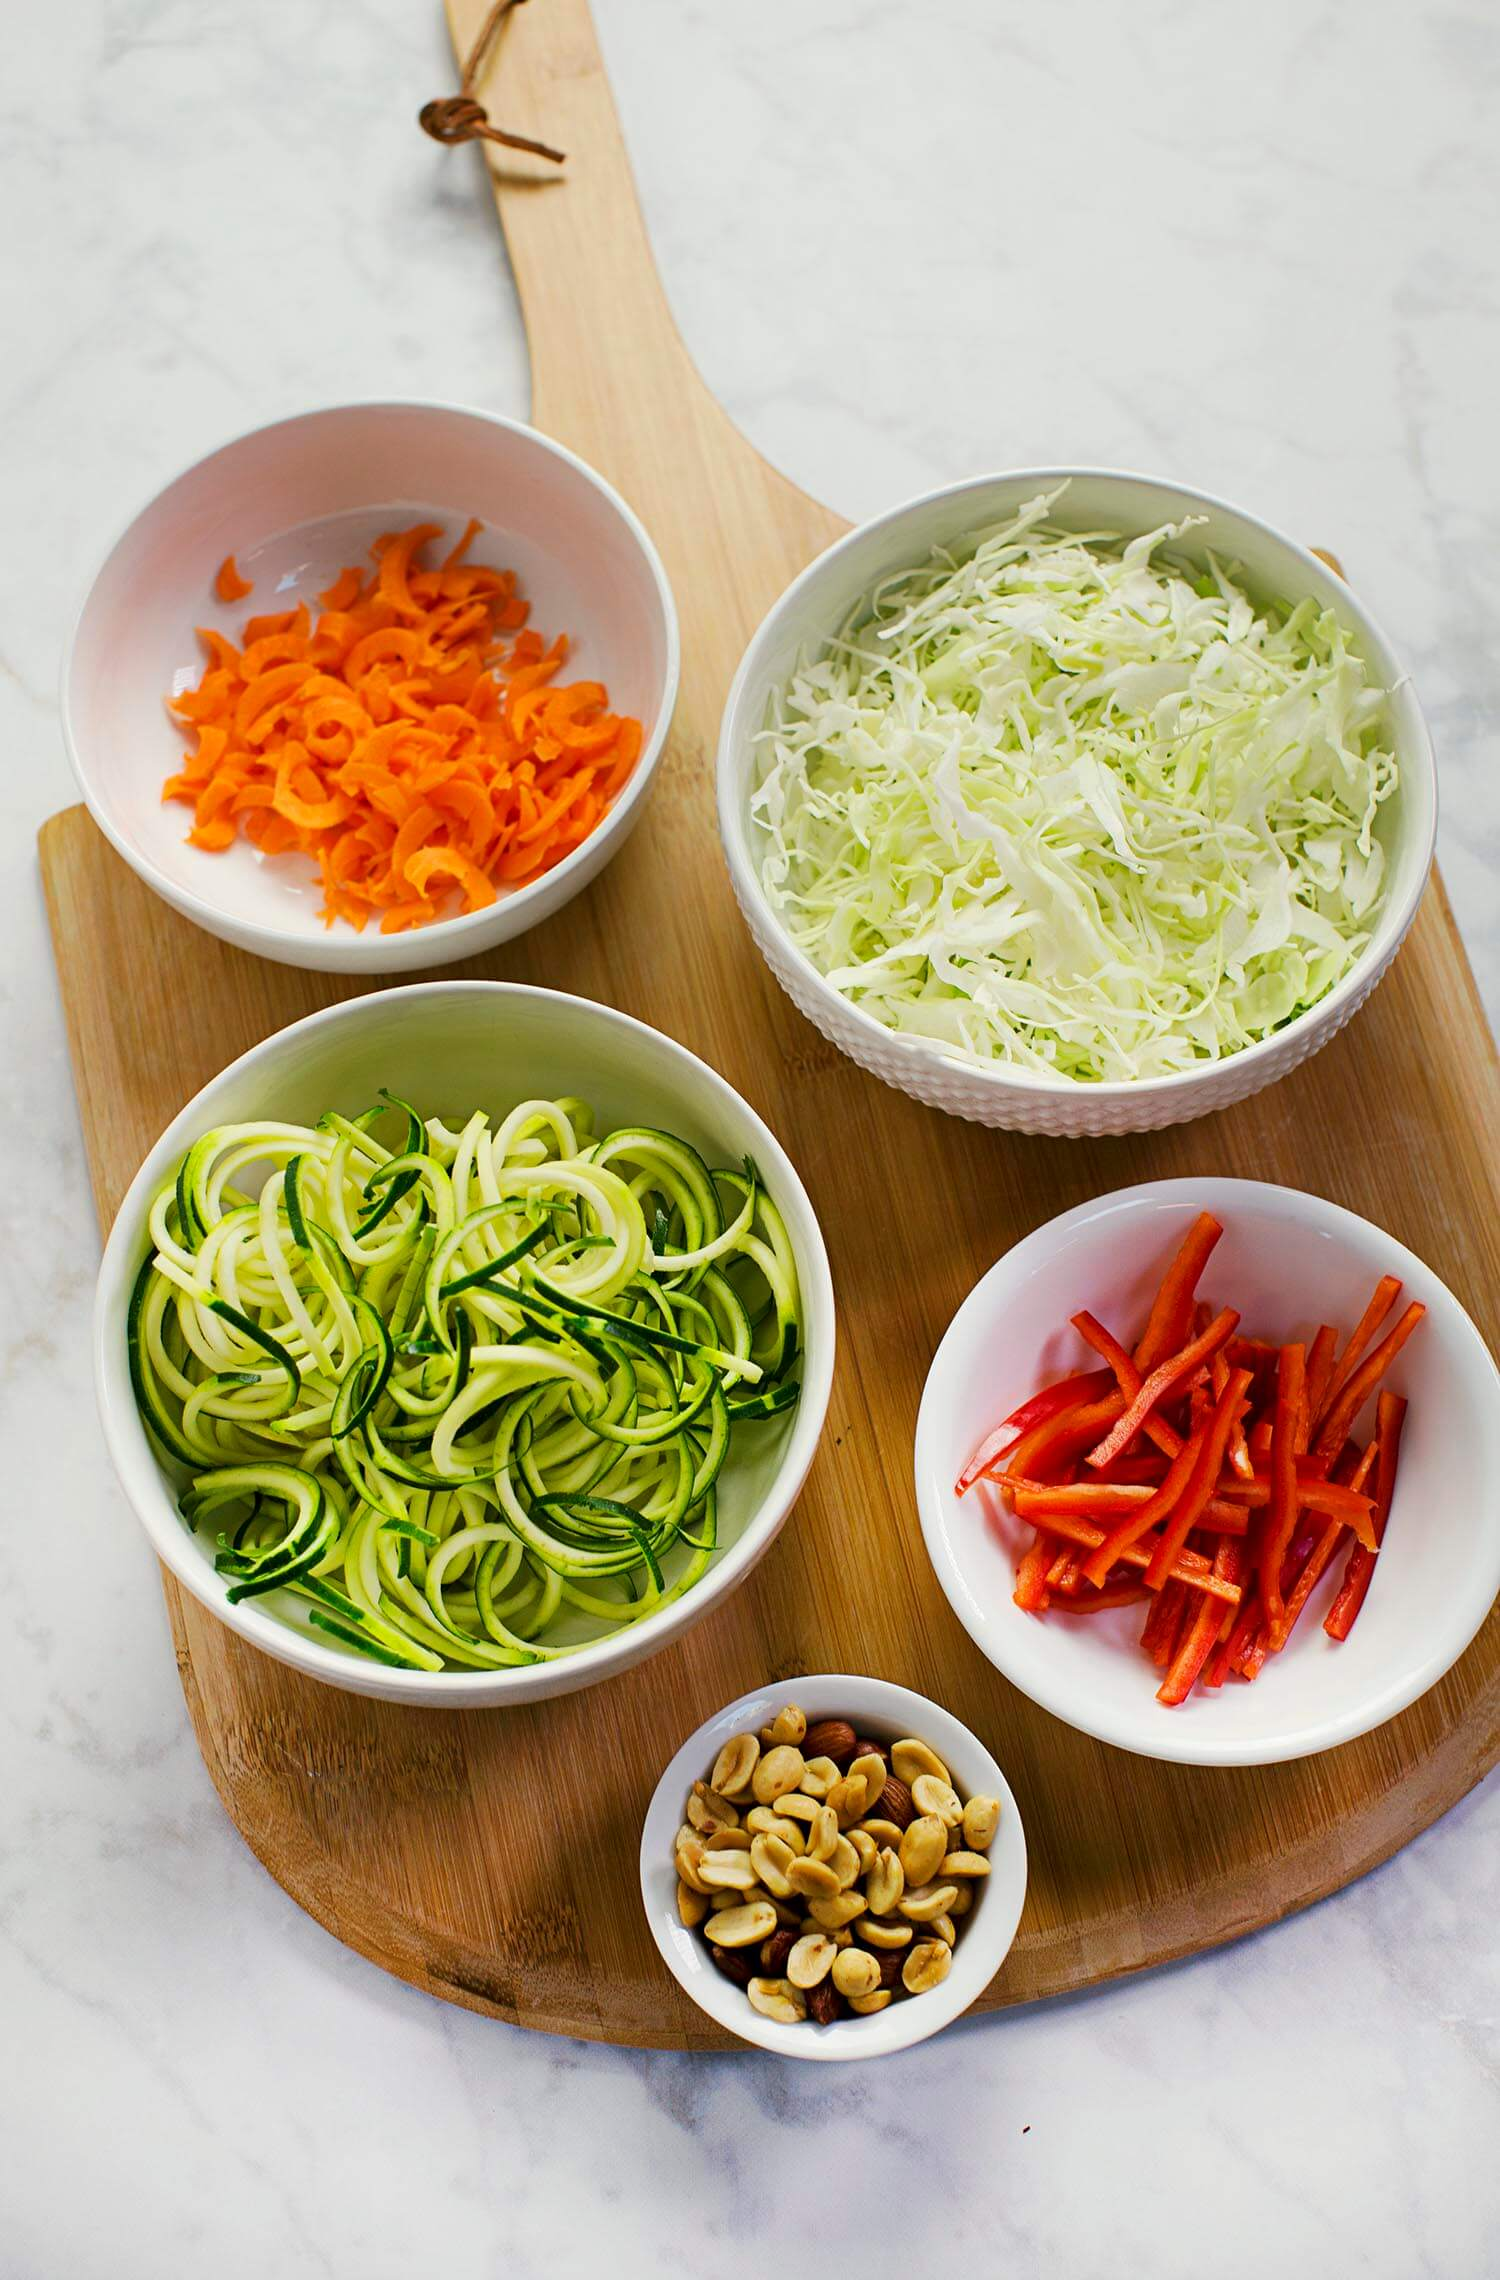 How to make raw pad thai